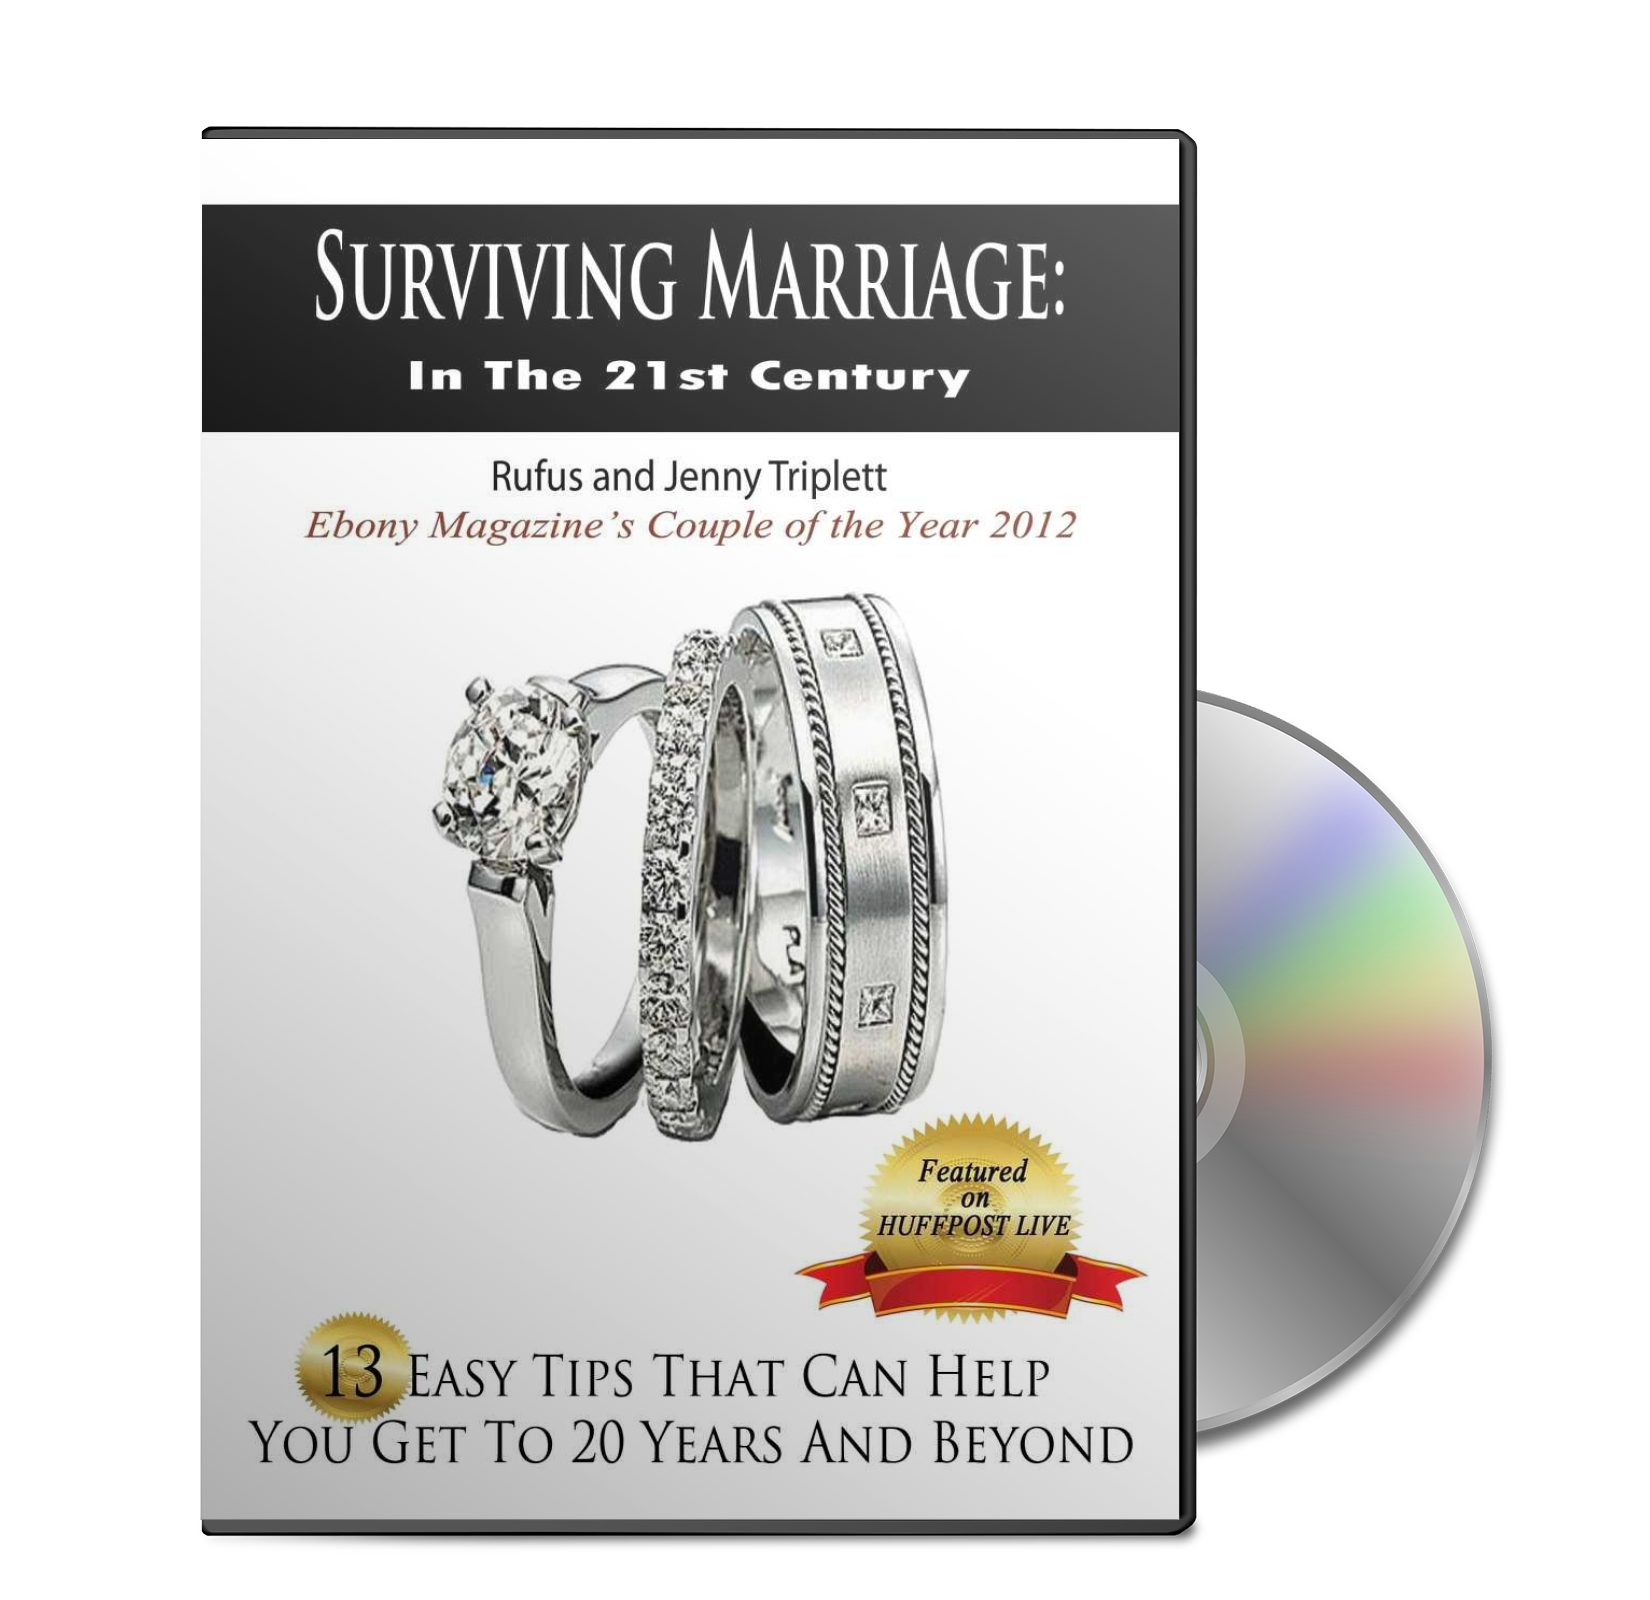 Surviving Marriage In The 21st Century - Bonus Tips CD